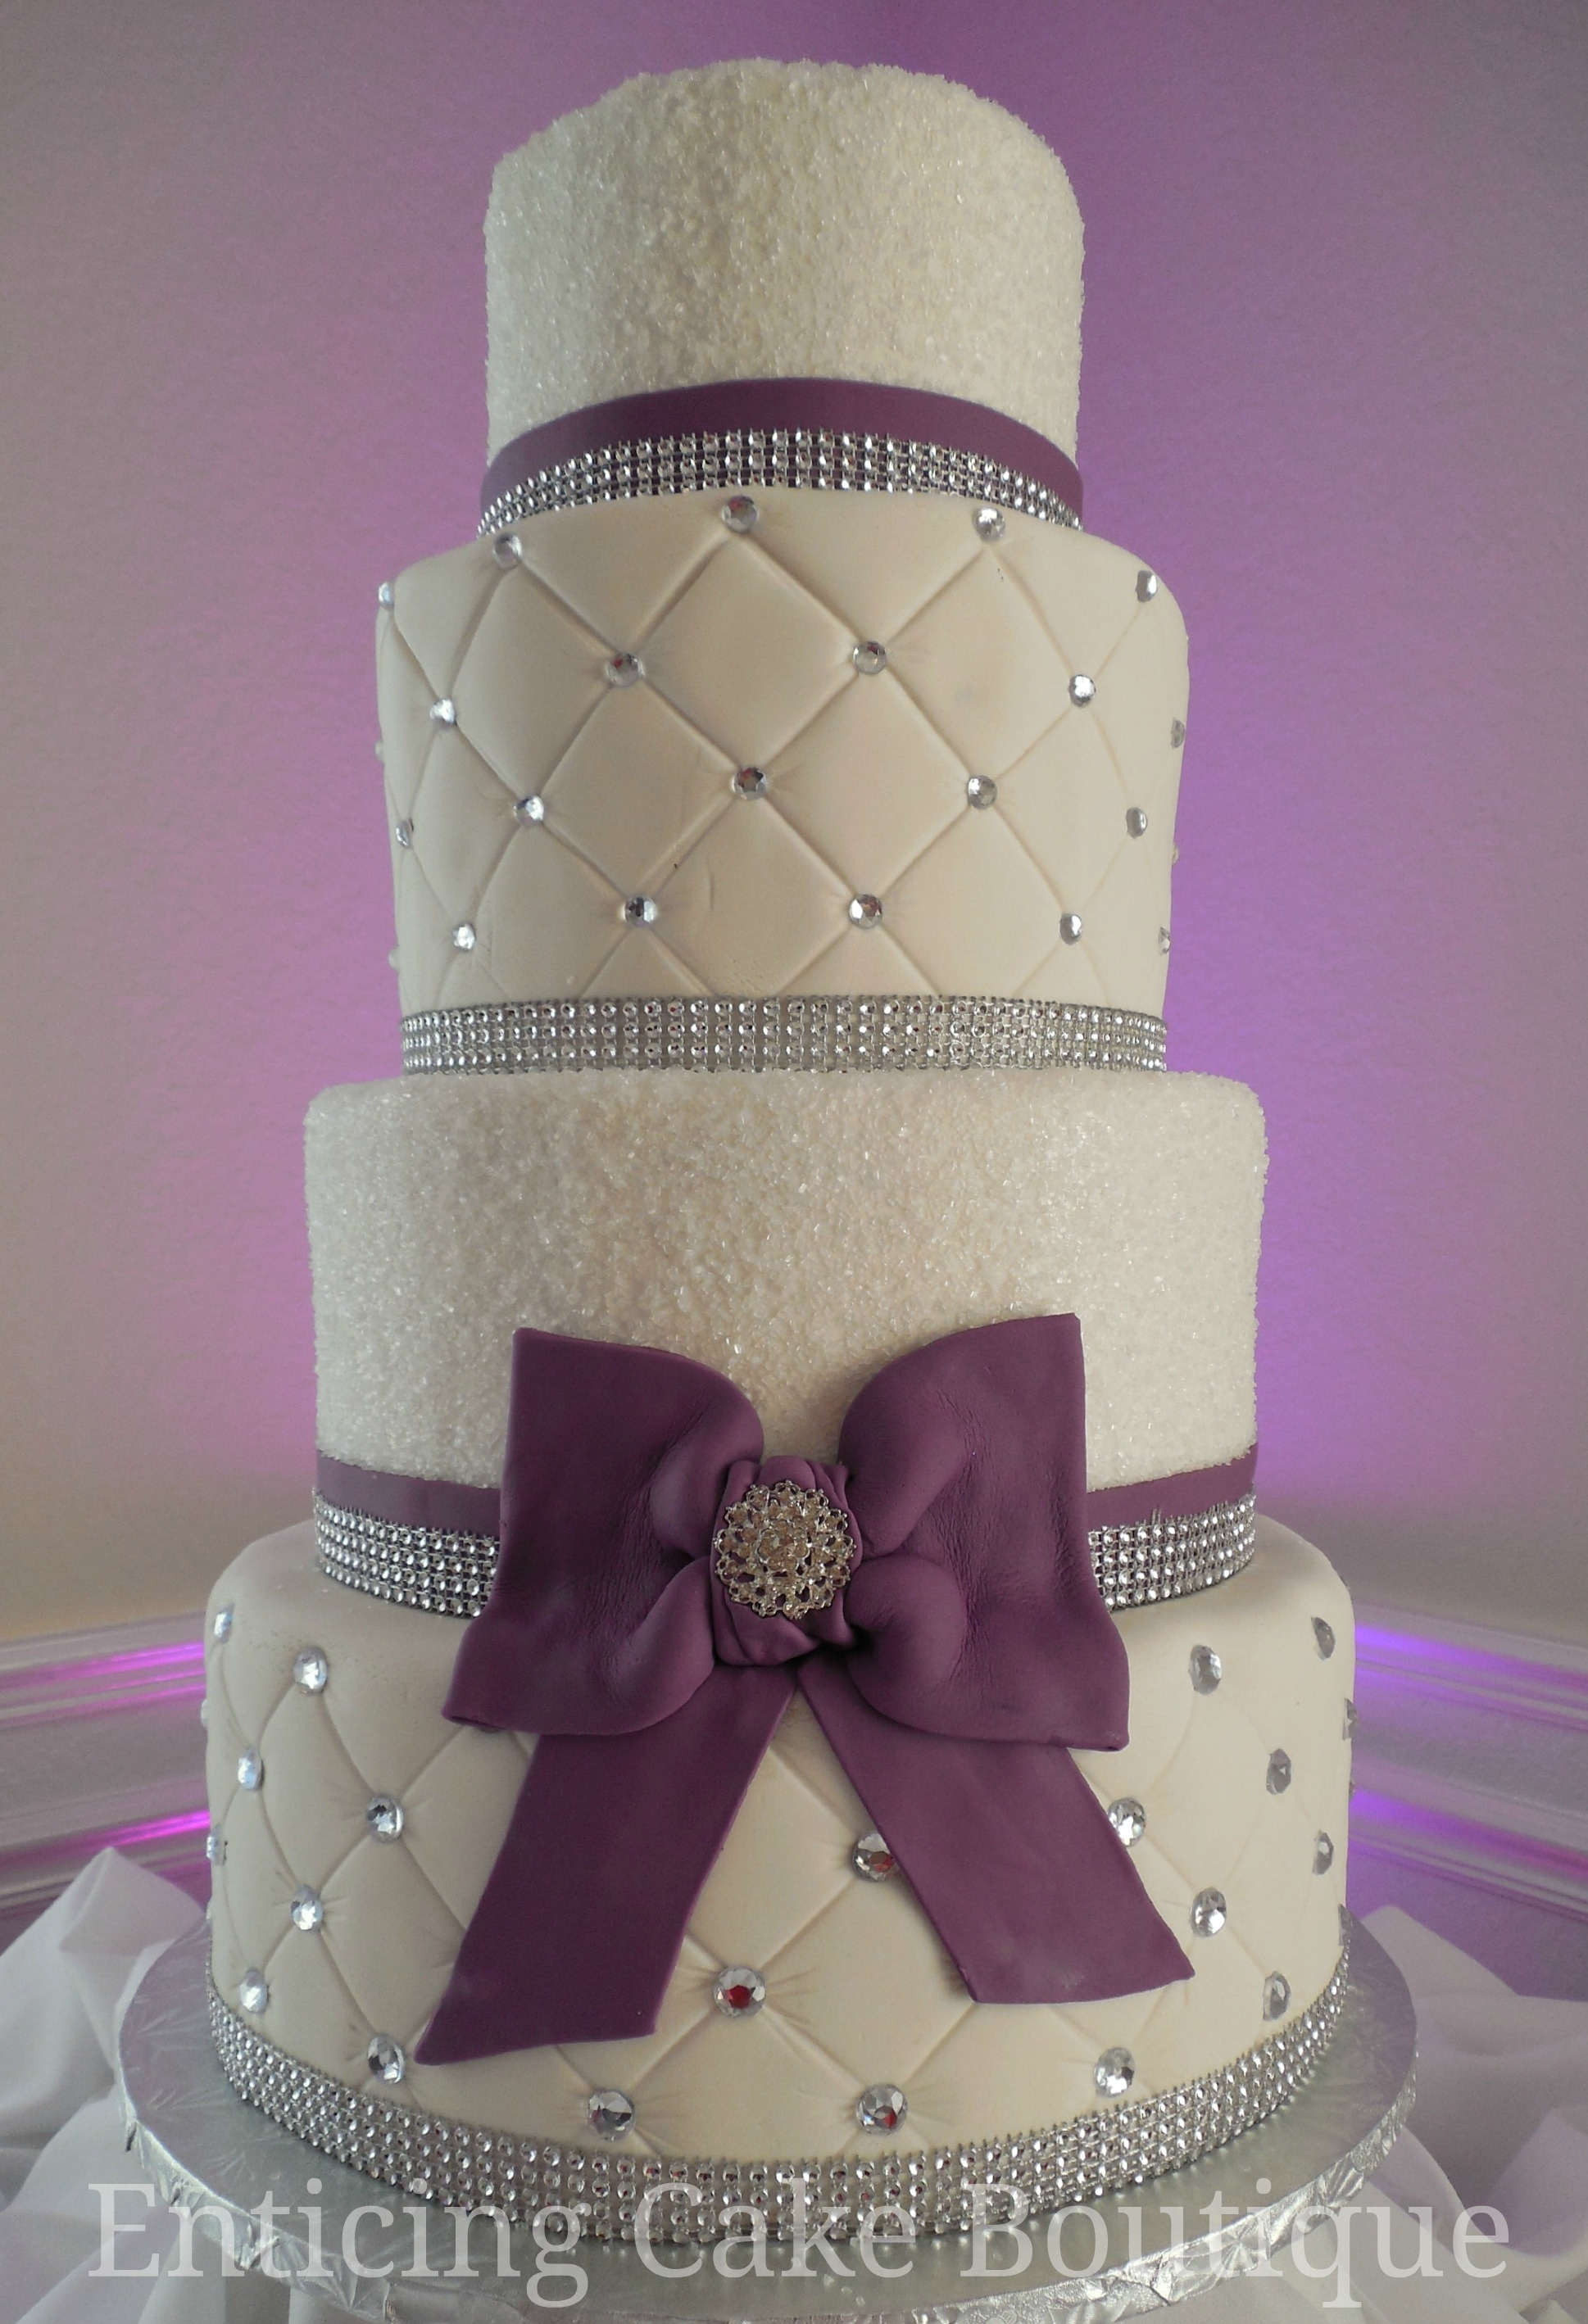 Nice Publix Wedding Cakes Thick Hawaiian Wedding Cake Shaped Purple Wedding Cakes Gay Wedding Cake Old Cupcake Wedding Cake BlackWedding Cake Photos Purple And White Crystal Wedding Cake   CakeCentral